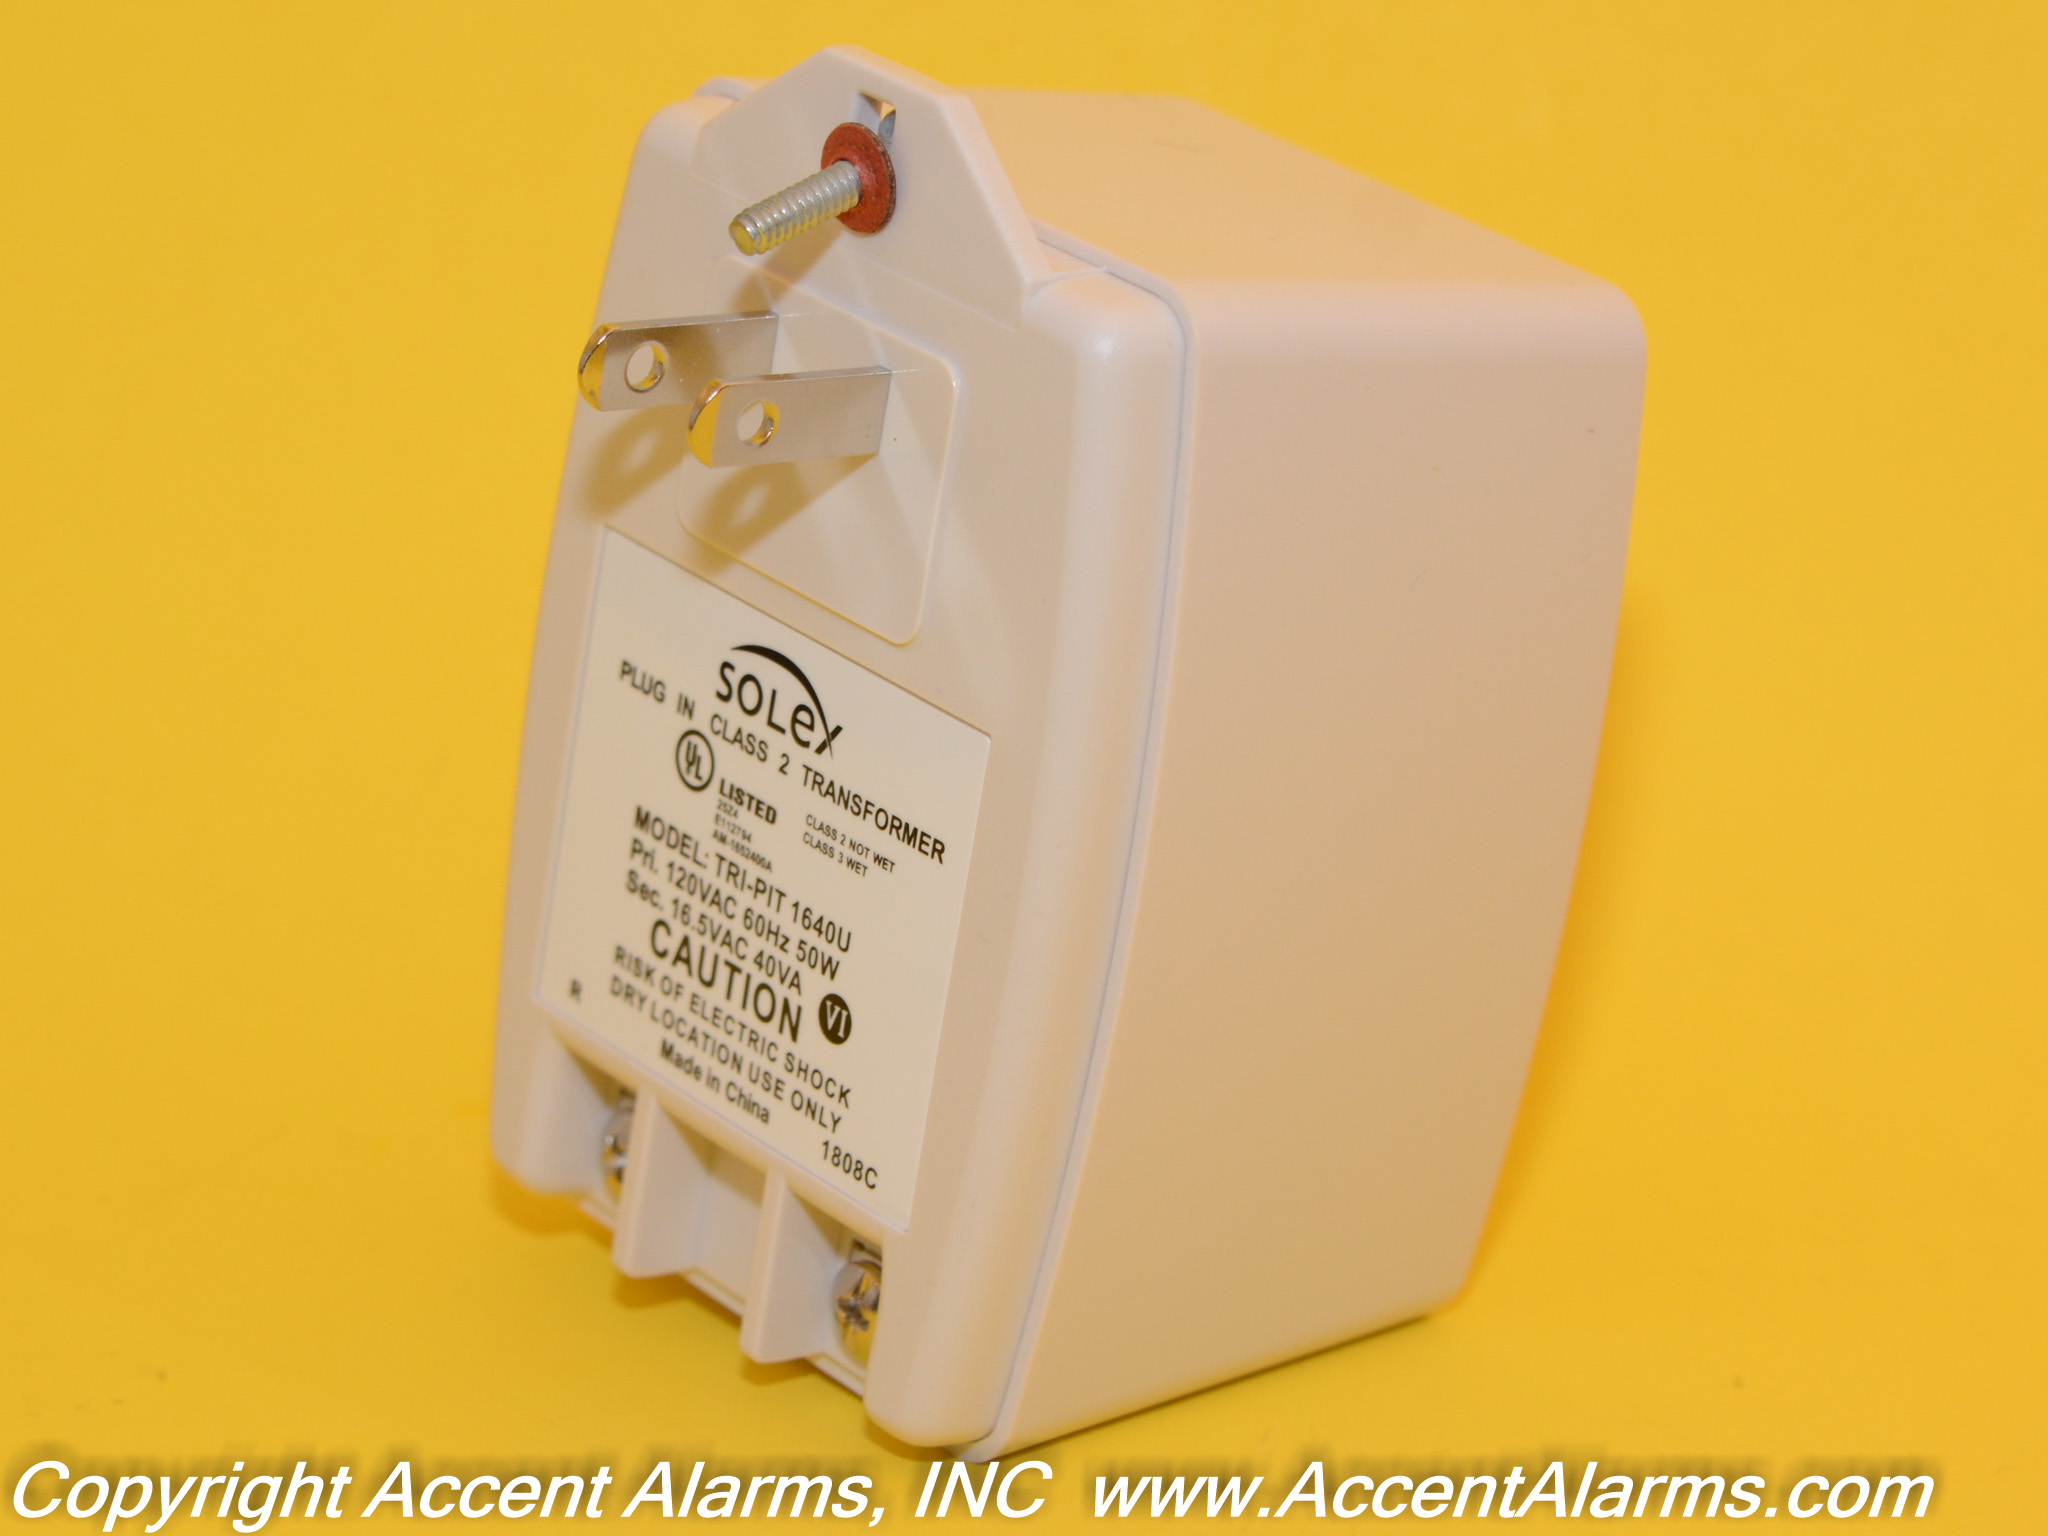 Altronix TP1640 Security Alarm Plug-in Transformer 16VAC/40va, 120VAC input